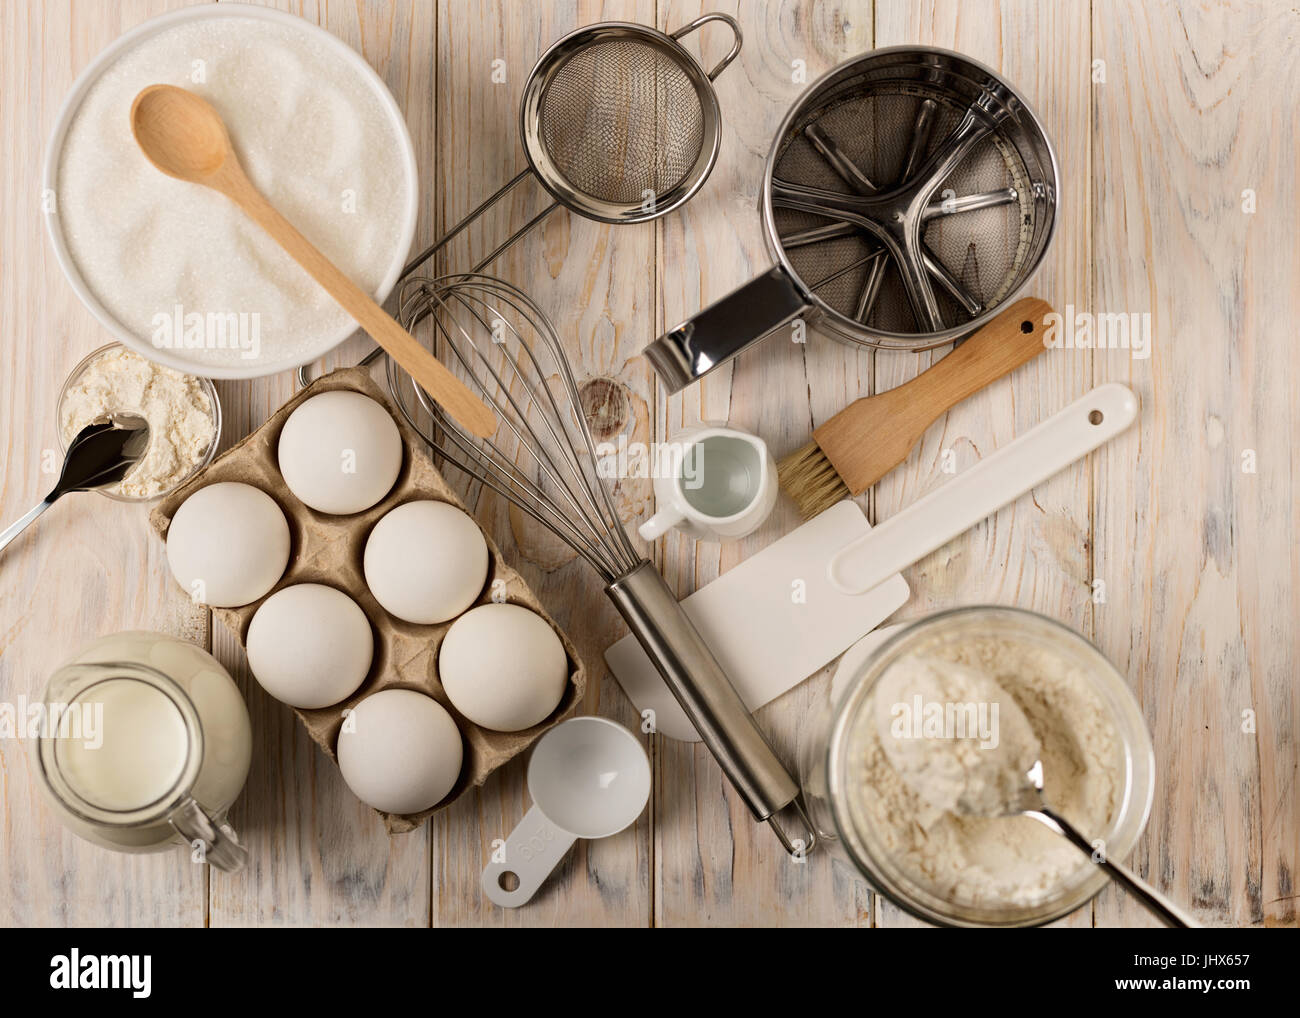 Kitchen utensils and tools for homemade baking on a light wooden background. Selective focus. - Stock Image